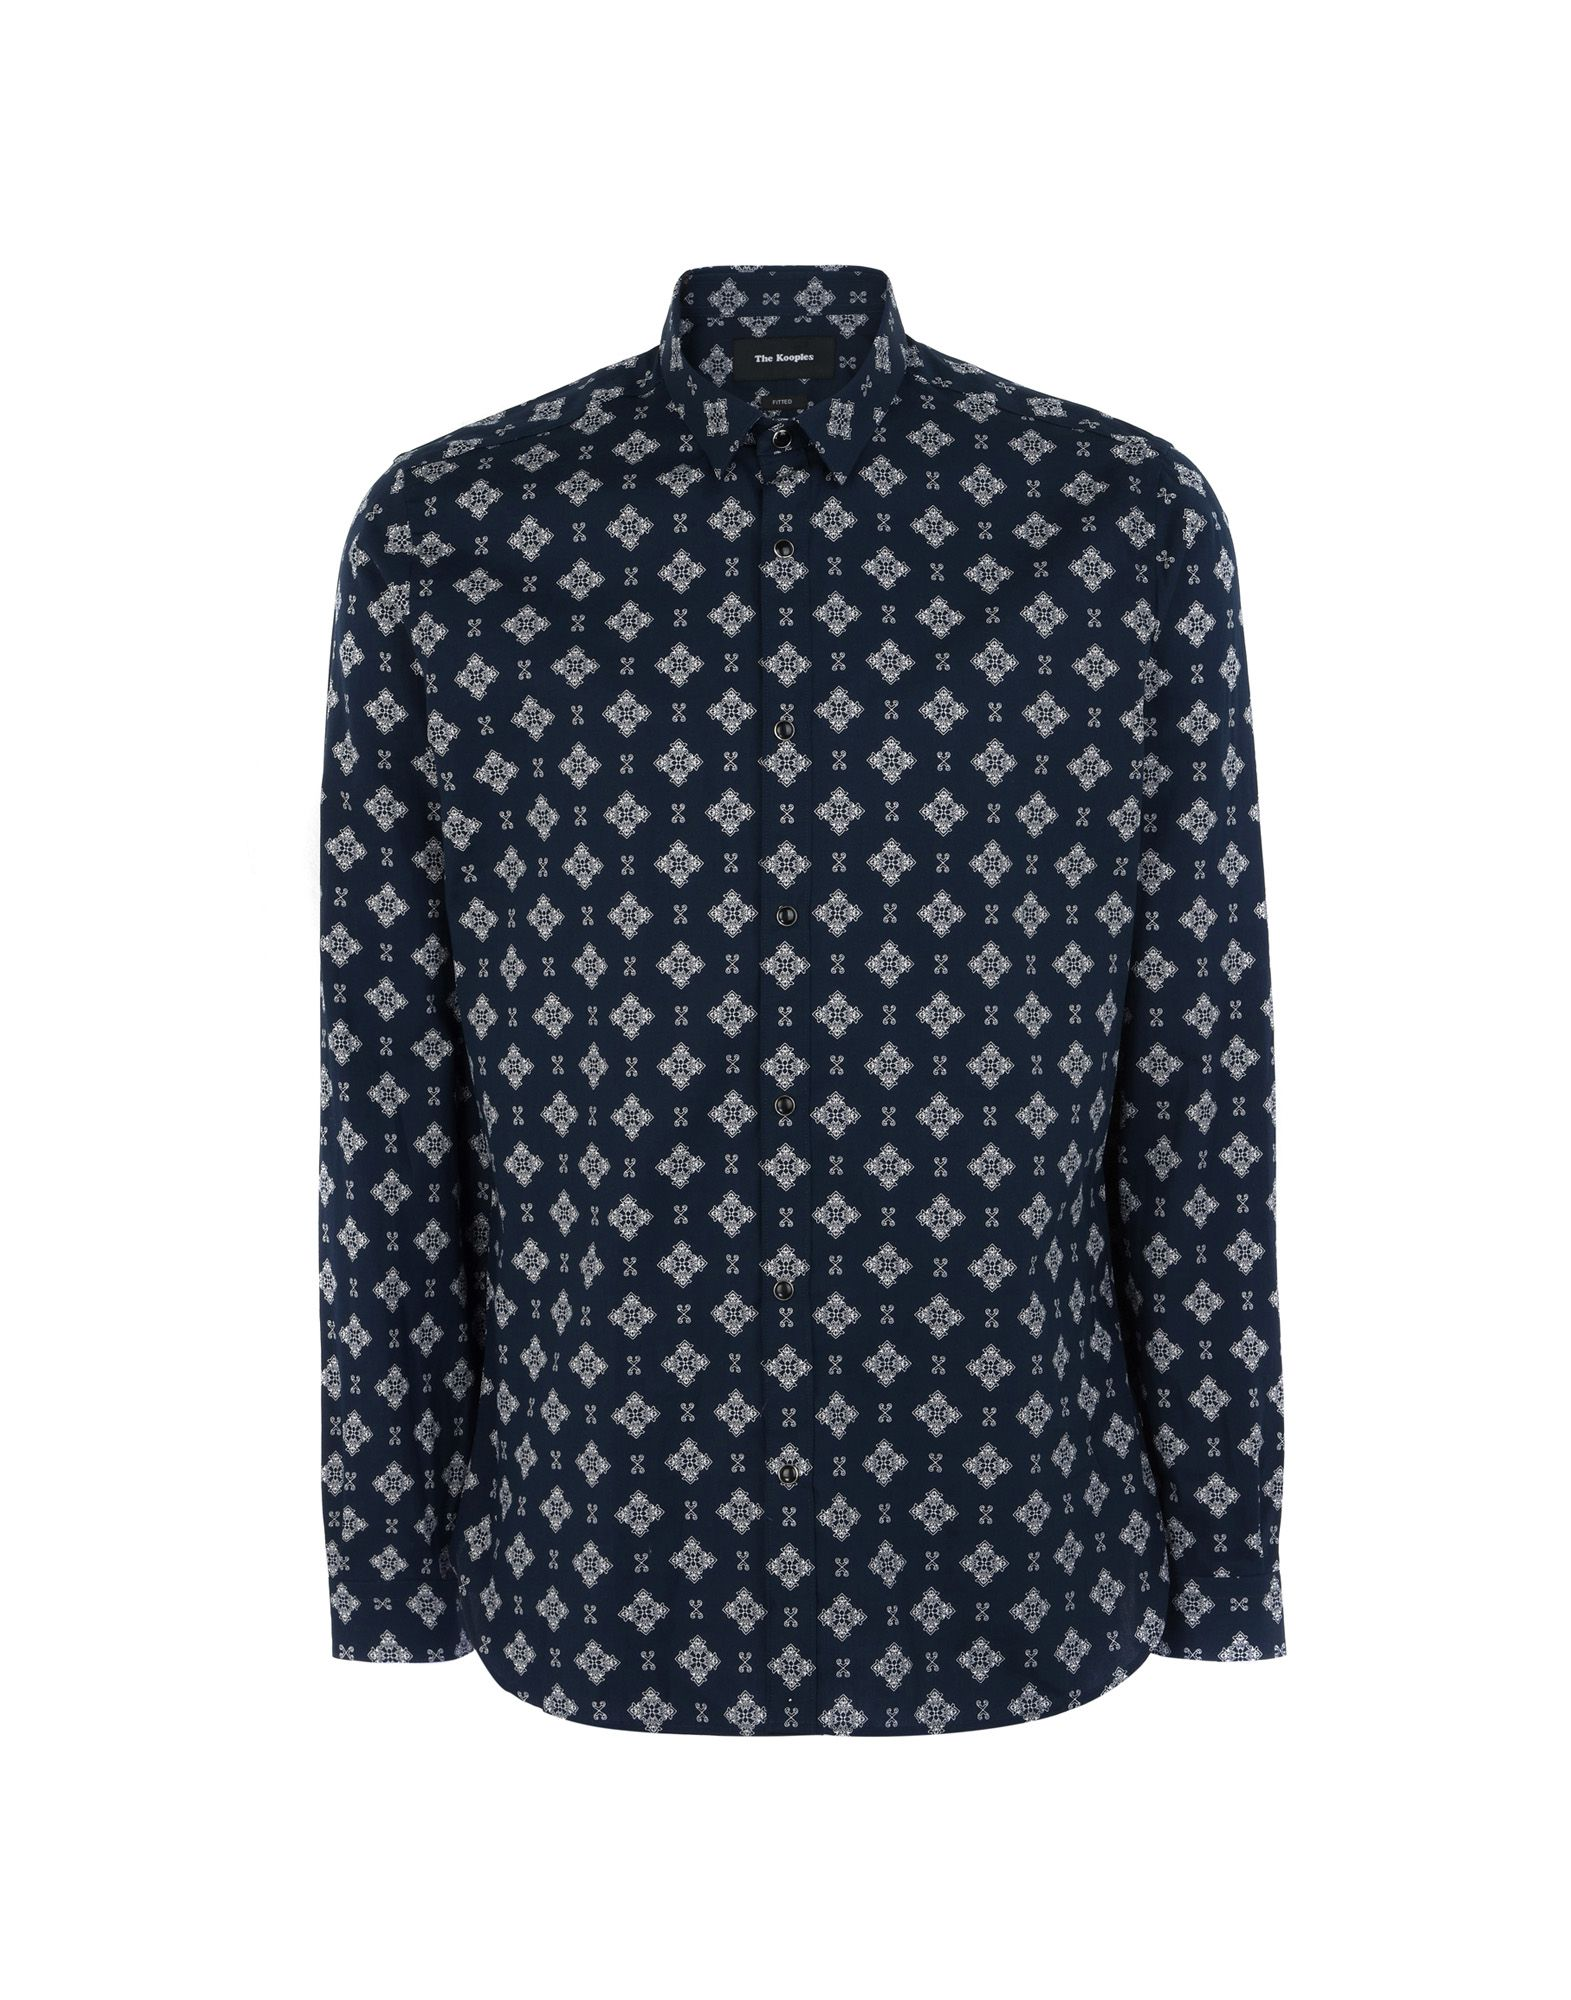 Camicia Fantasia The Kooples Printed Shirt With A Classic Collar - Donna - Acquista online su